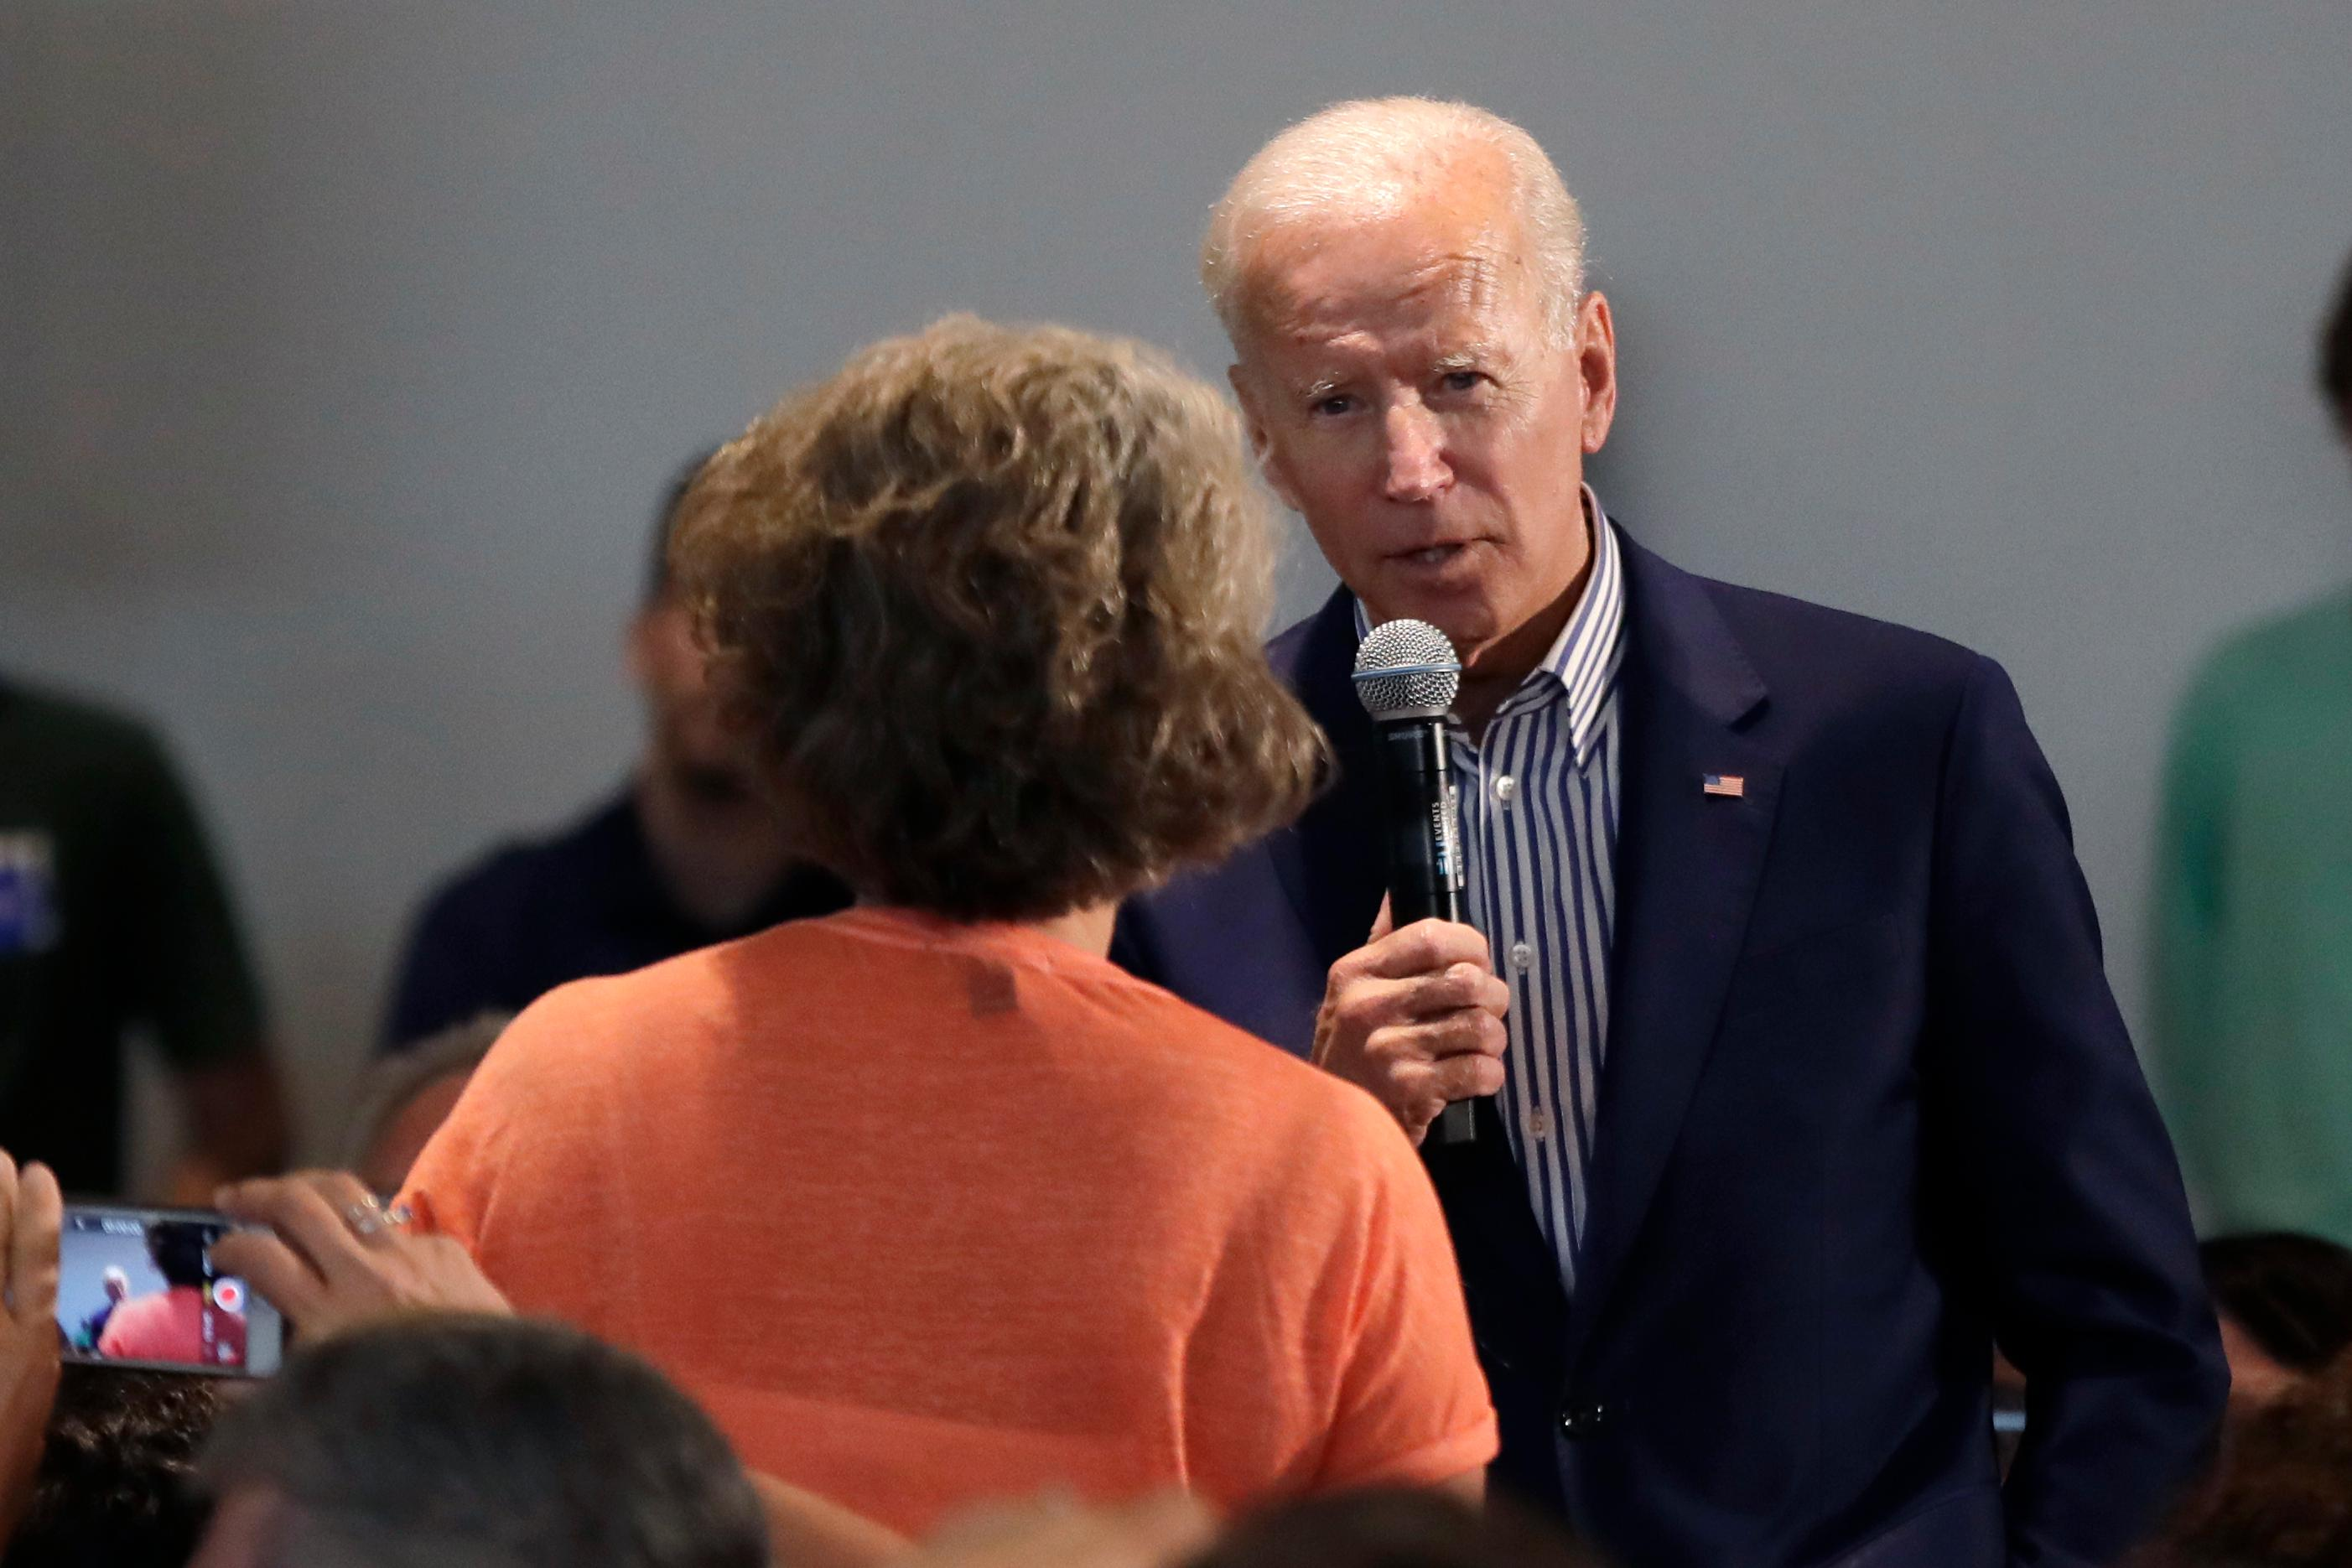 Democratic presidential candidate former Vice President Joe Biden answers a question from a woman in the audience during a campaign event at Dartmouth College, Friday, Aug. 23, 2019, in Hanover, N.H. (AP Photo/Elise Amendola)